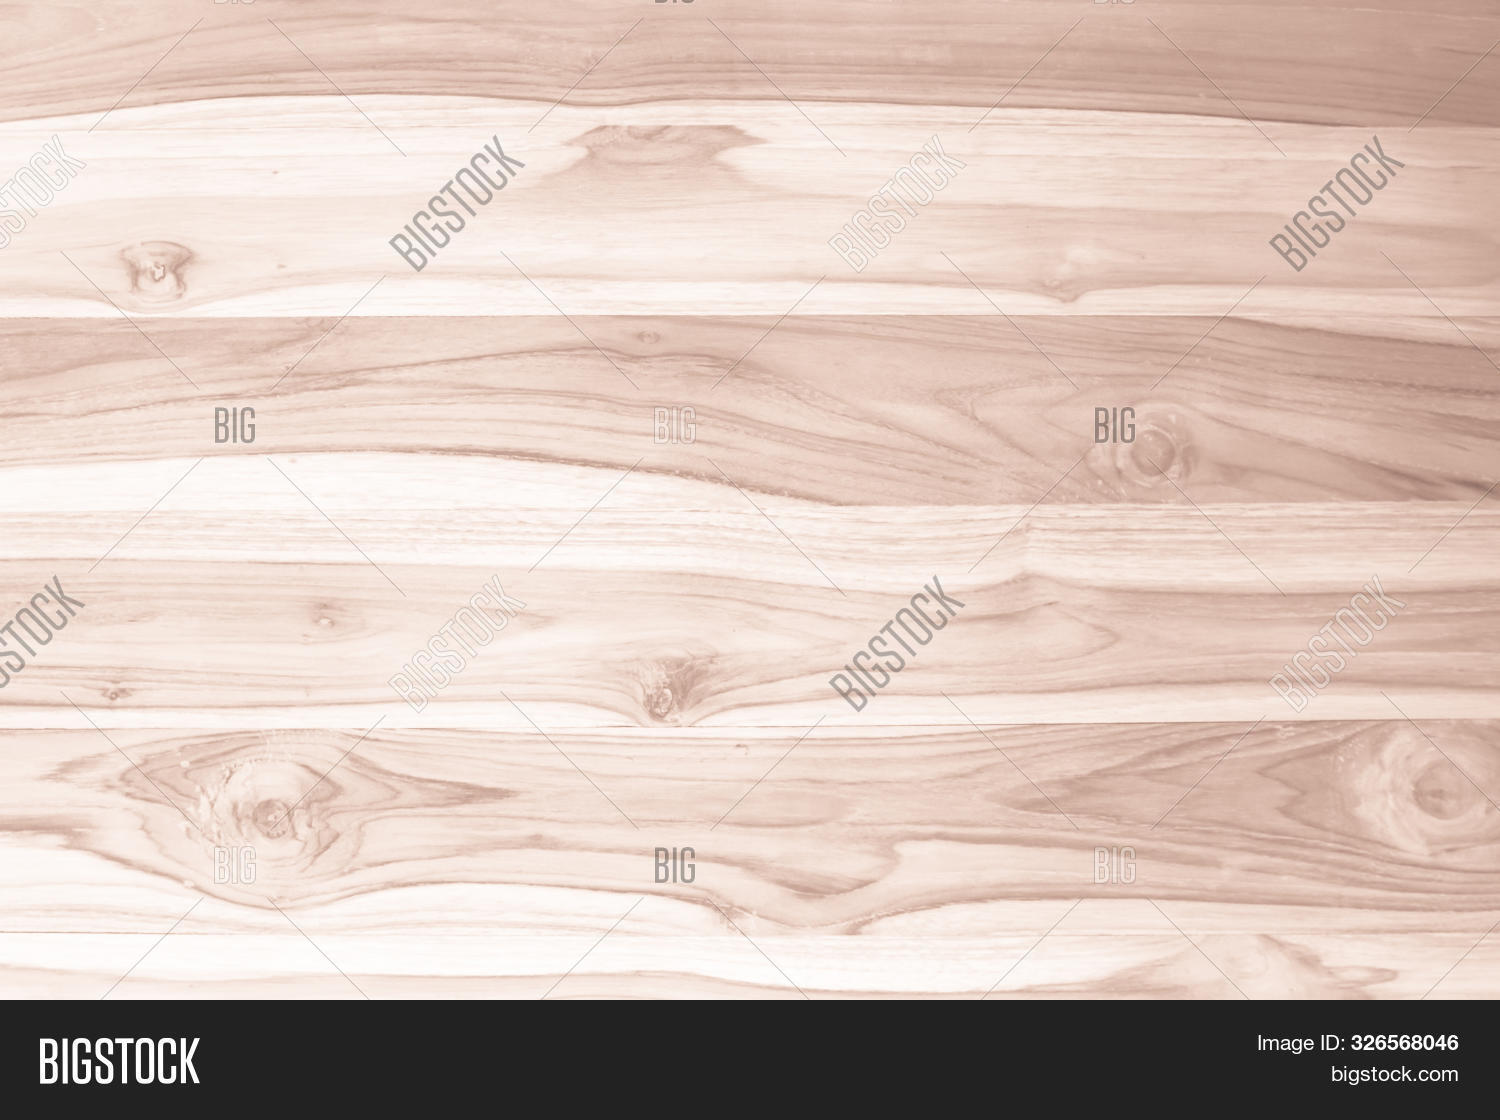 Gold Teak Wood Surface. Grain Timber Texture Background. Wood Texture Background, Oak Wood Wall Fenc